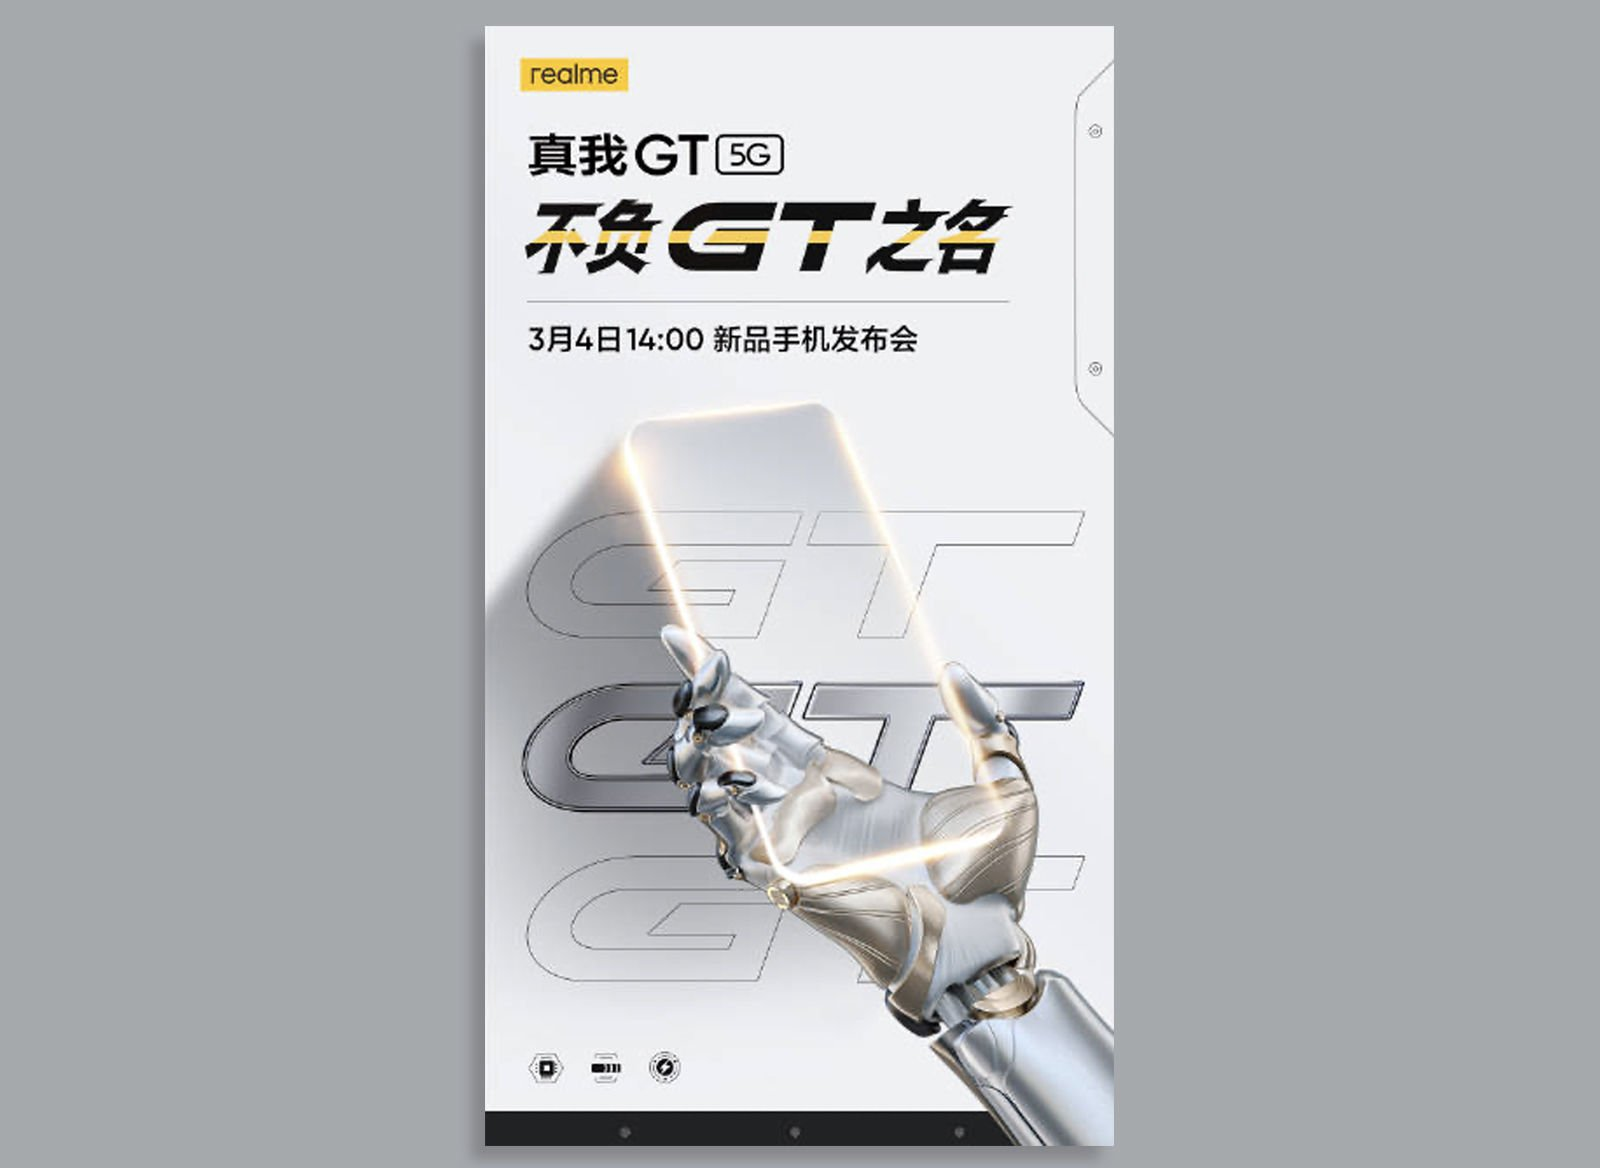 Realme GT Chinese teaser image